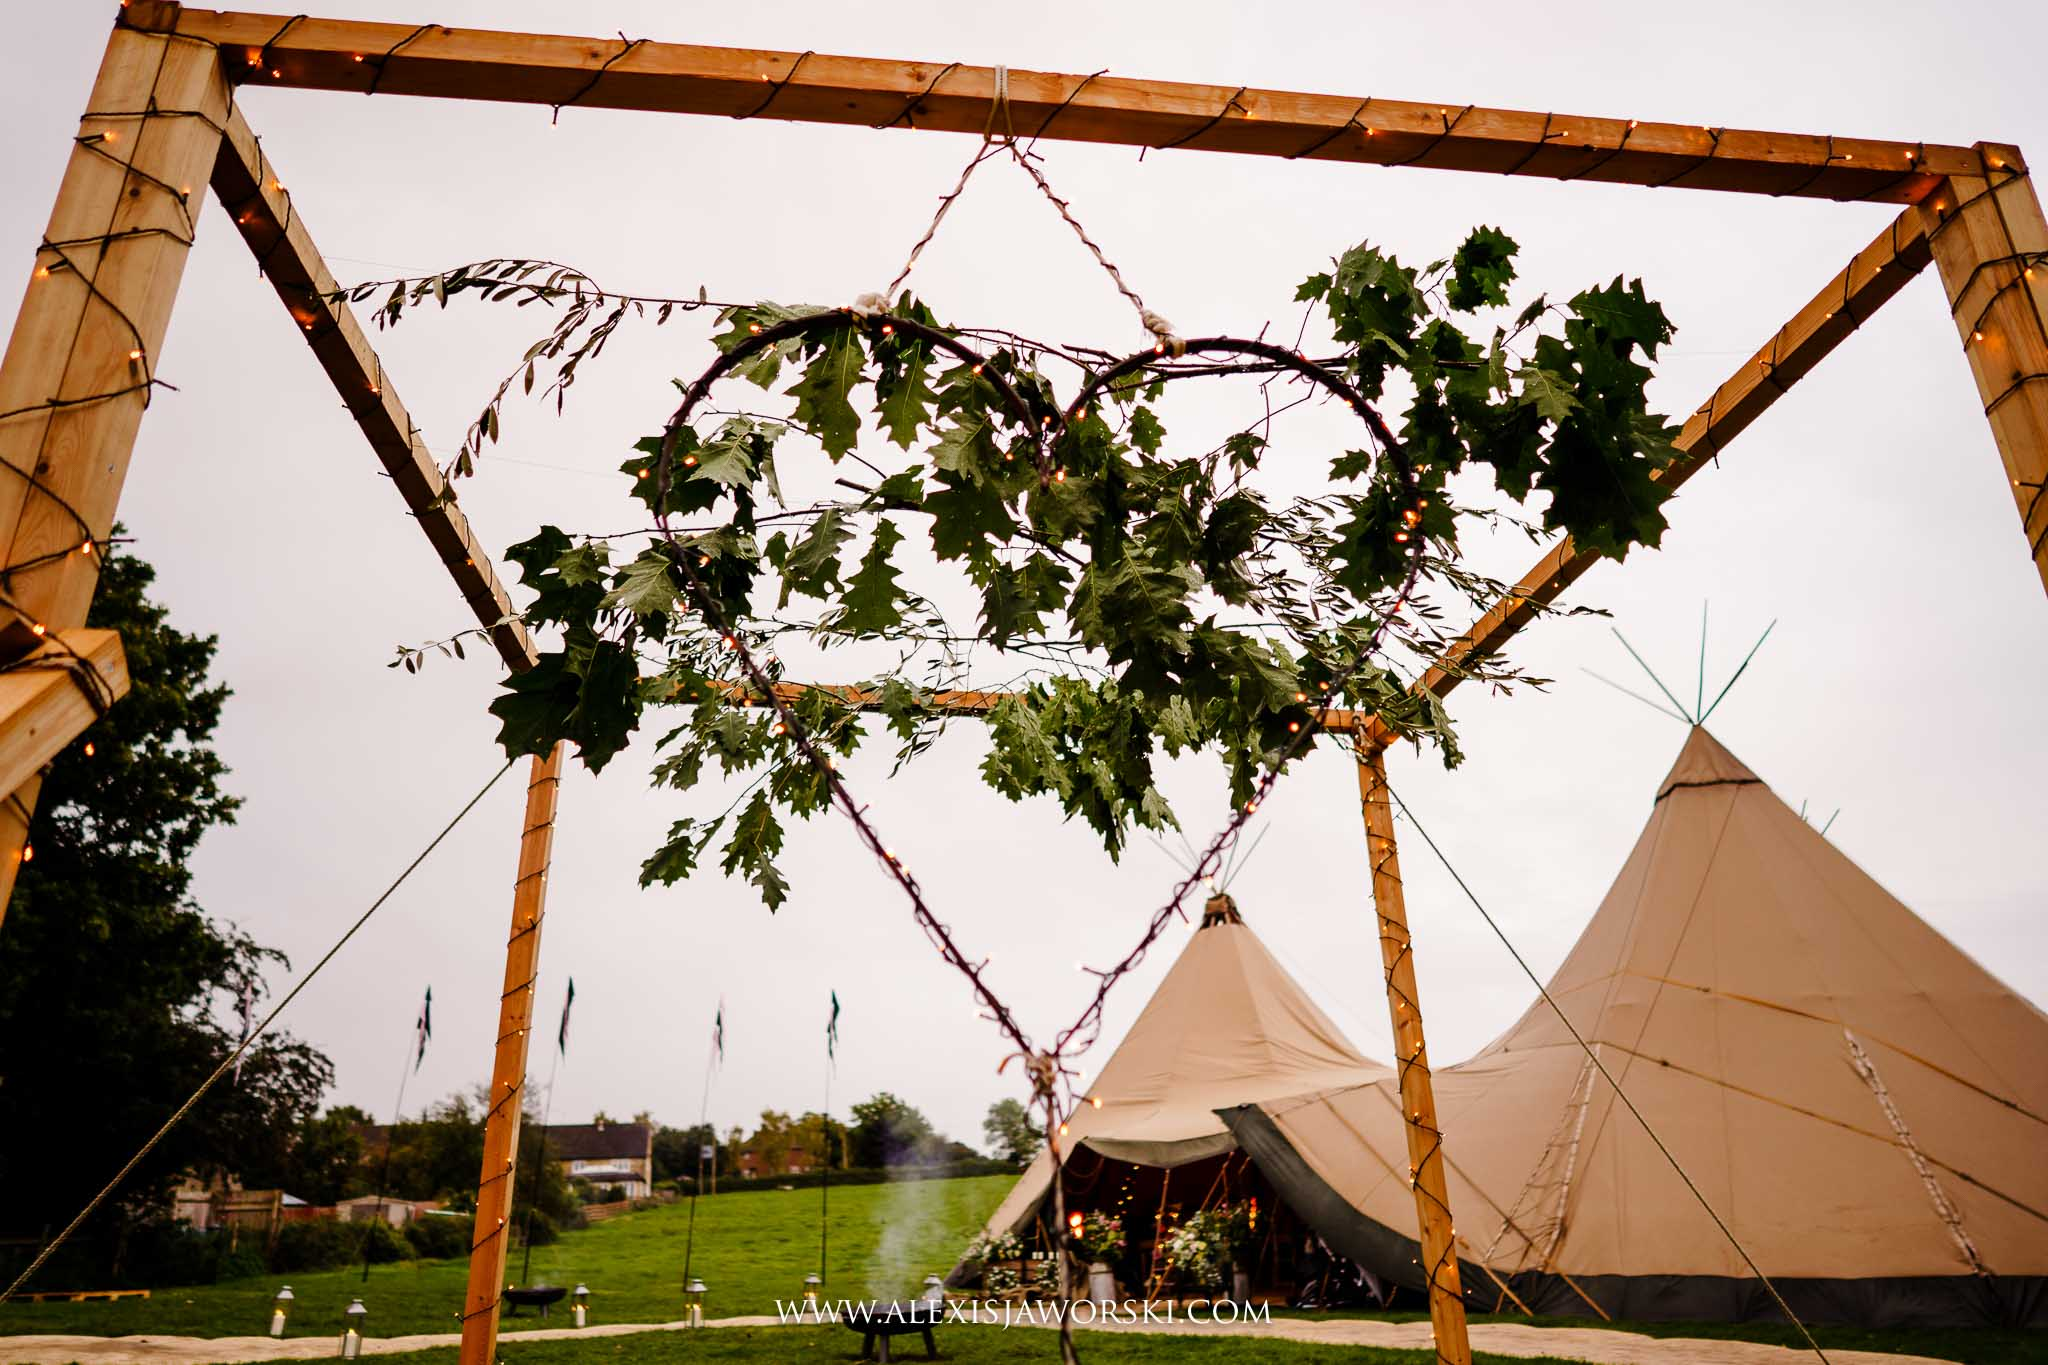 view of the teepee